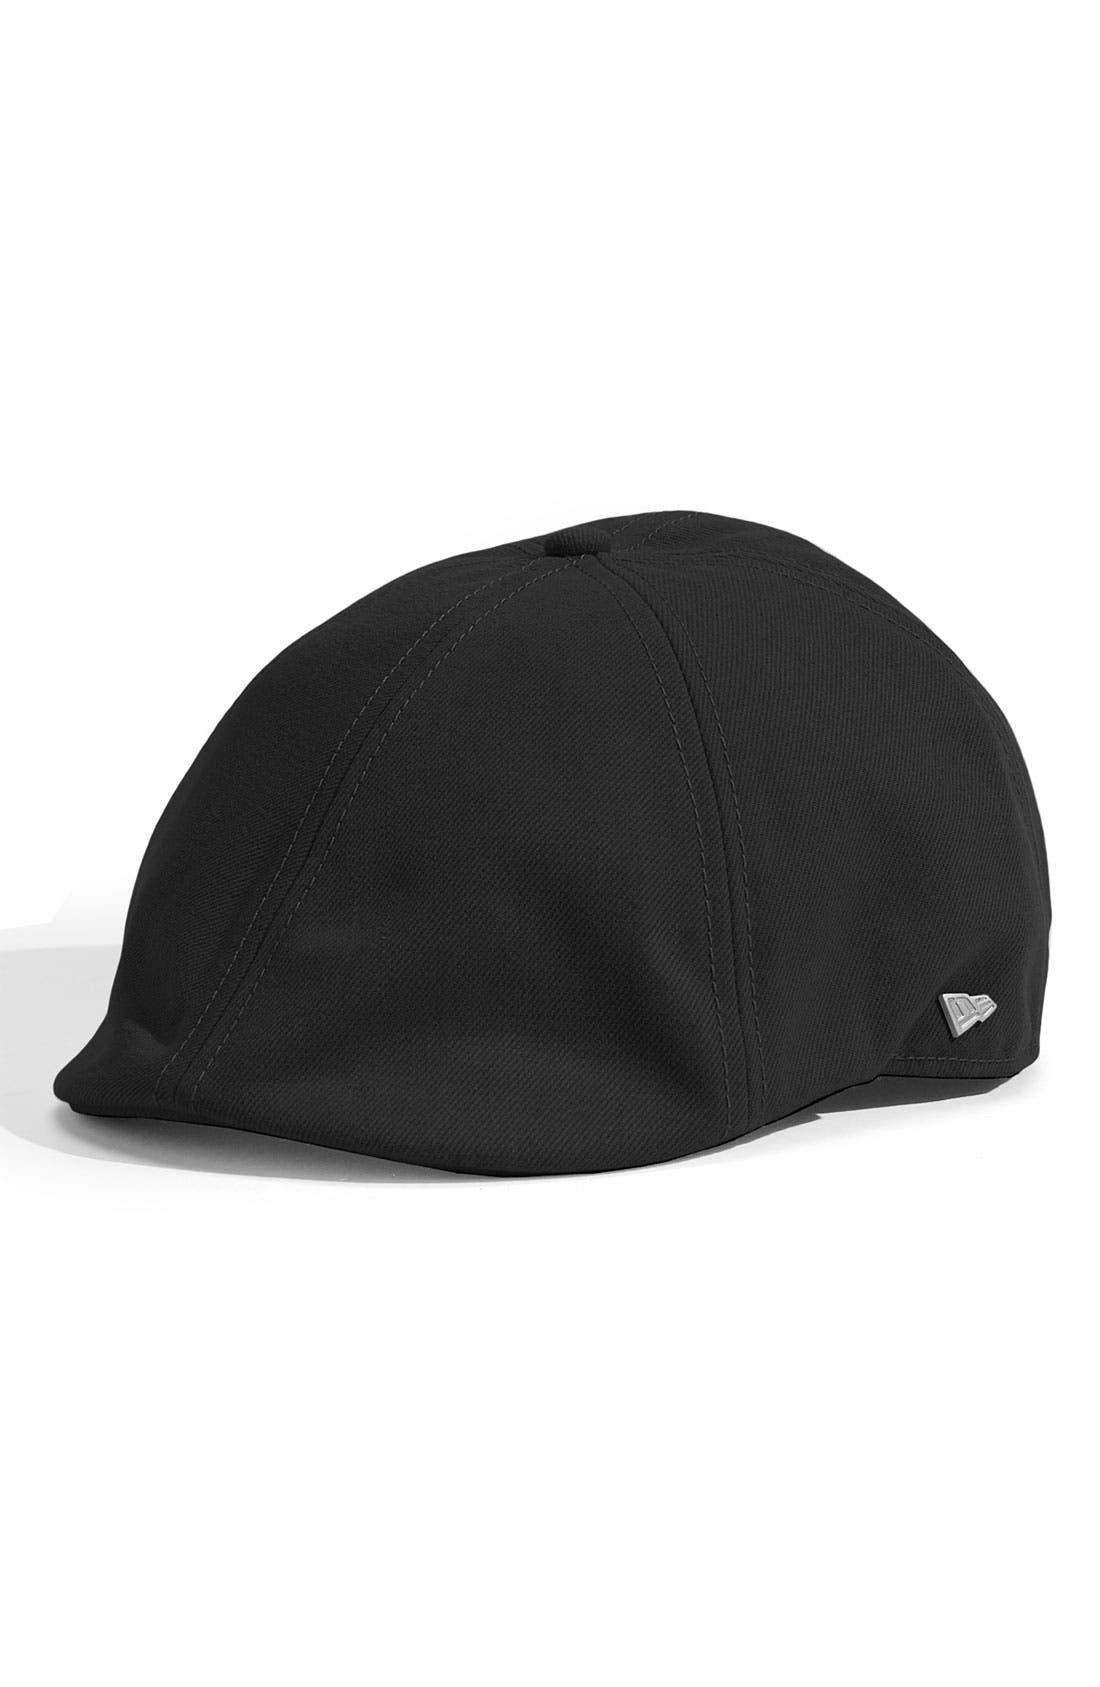 Main Image - New Era Cap 'Runty 2' Driving Cap